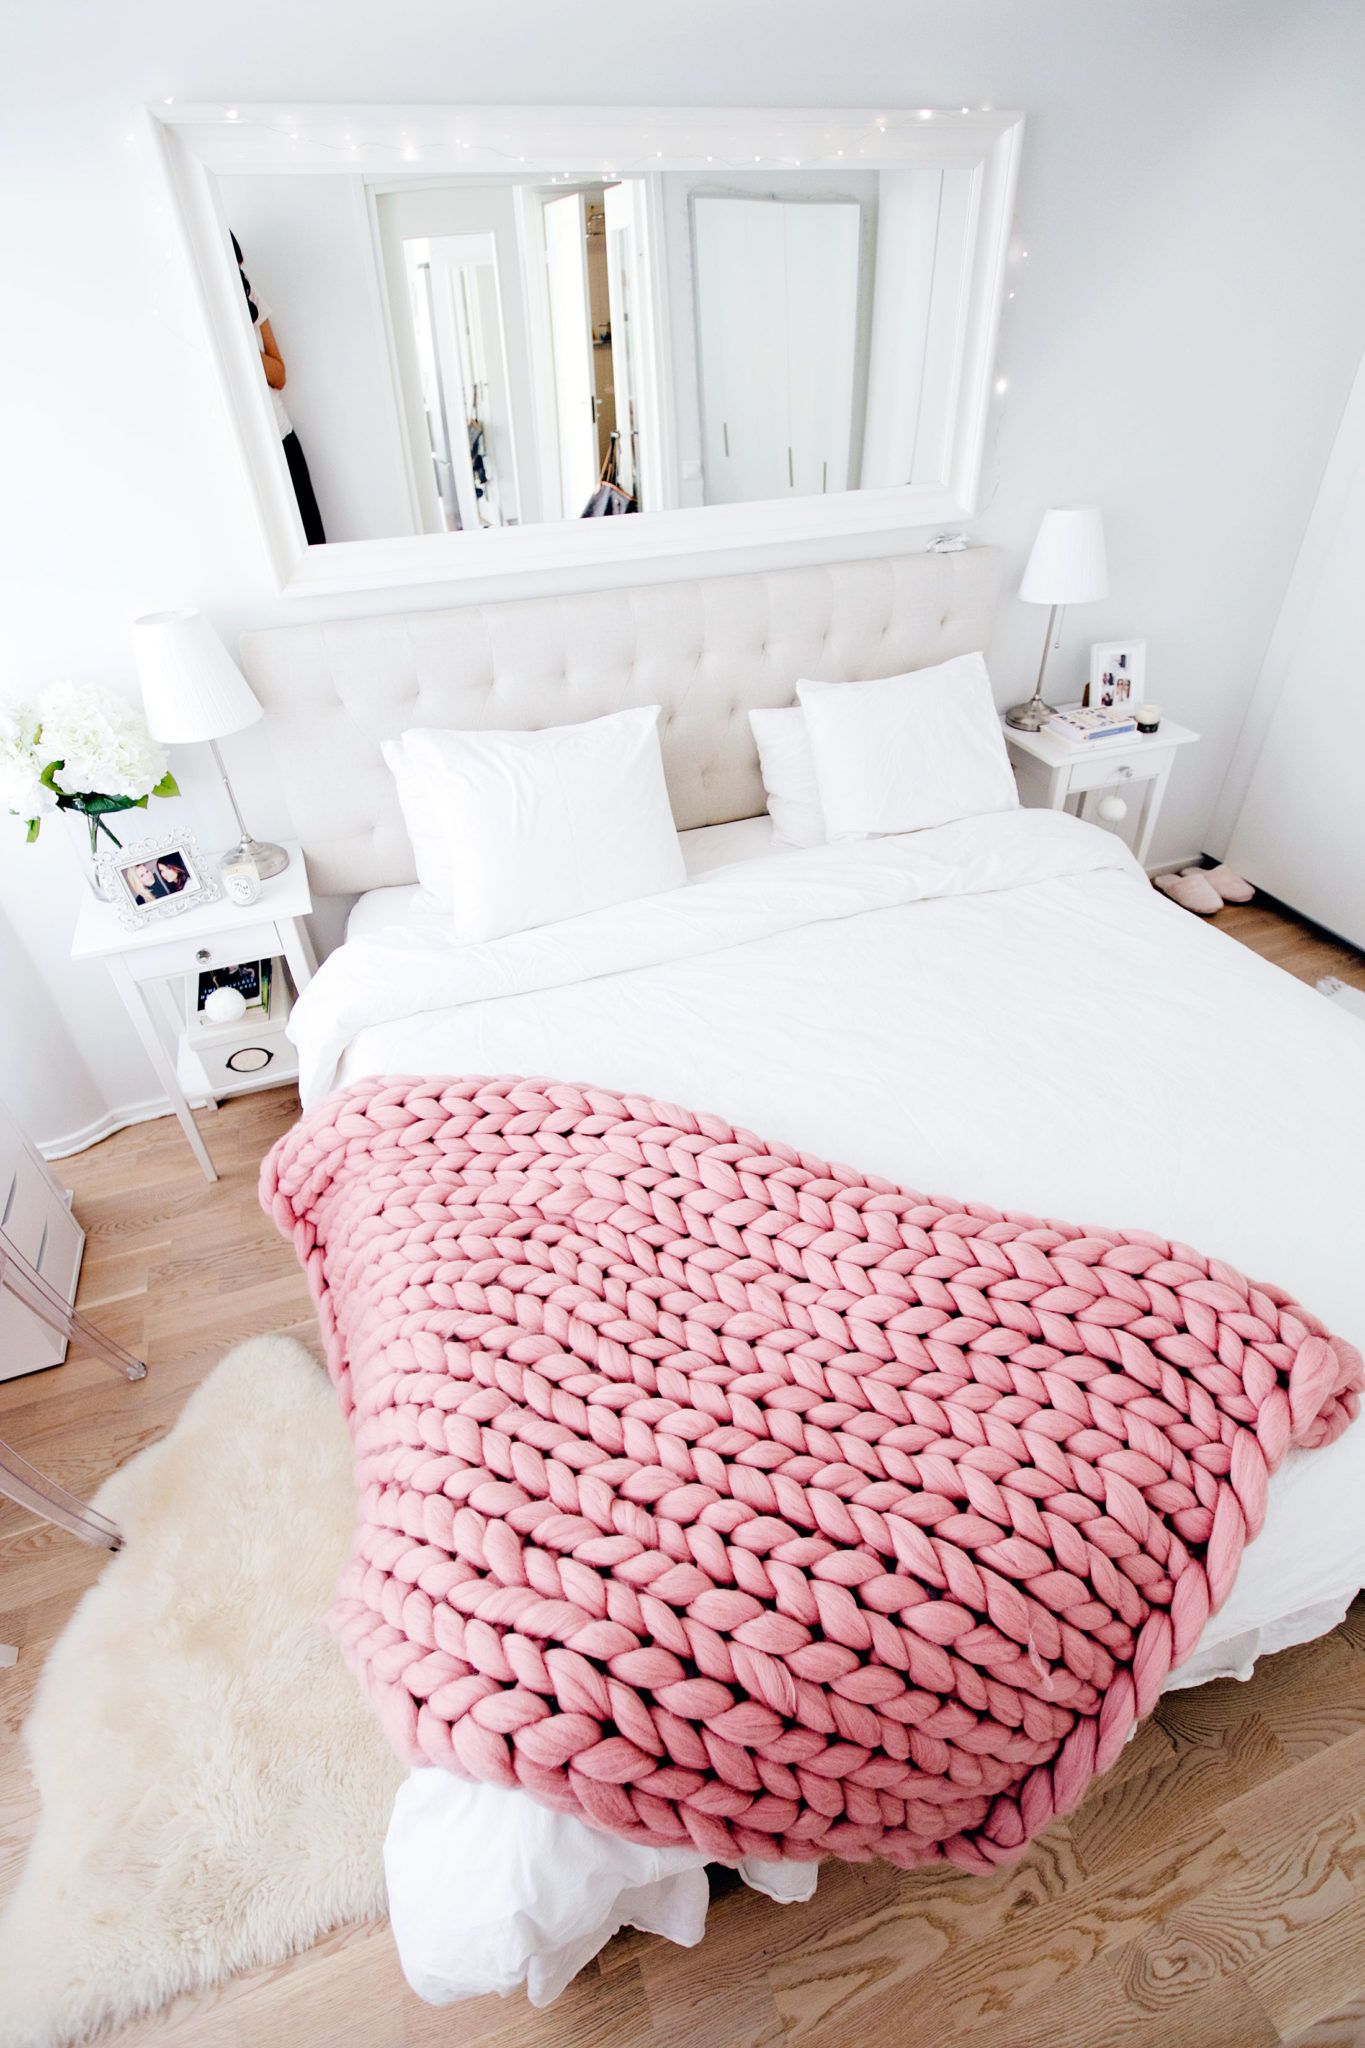 I've been dreaming about a chunky big blanket now for forever without knowing where to find one, and now I suddenly have one! It's so lovely, cute and cozy, the perfect neutral pink. Adds a nice touch to my bedroom, though I haven't decided if I should have it on my bed or in my …